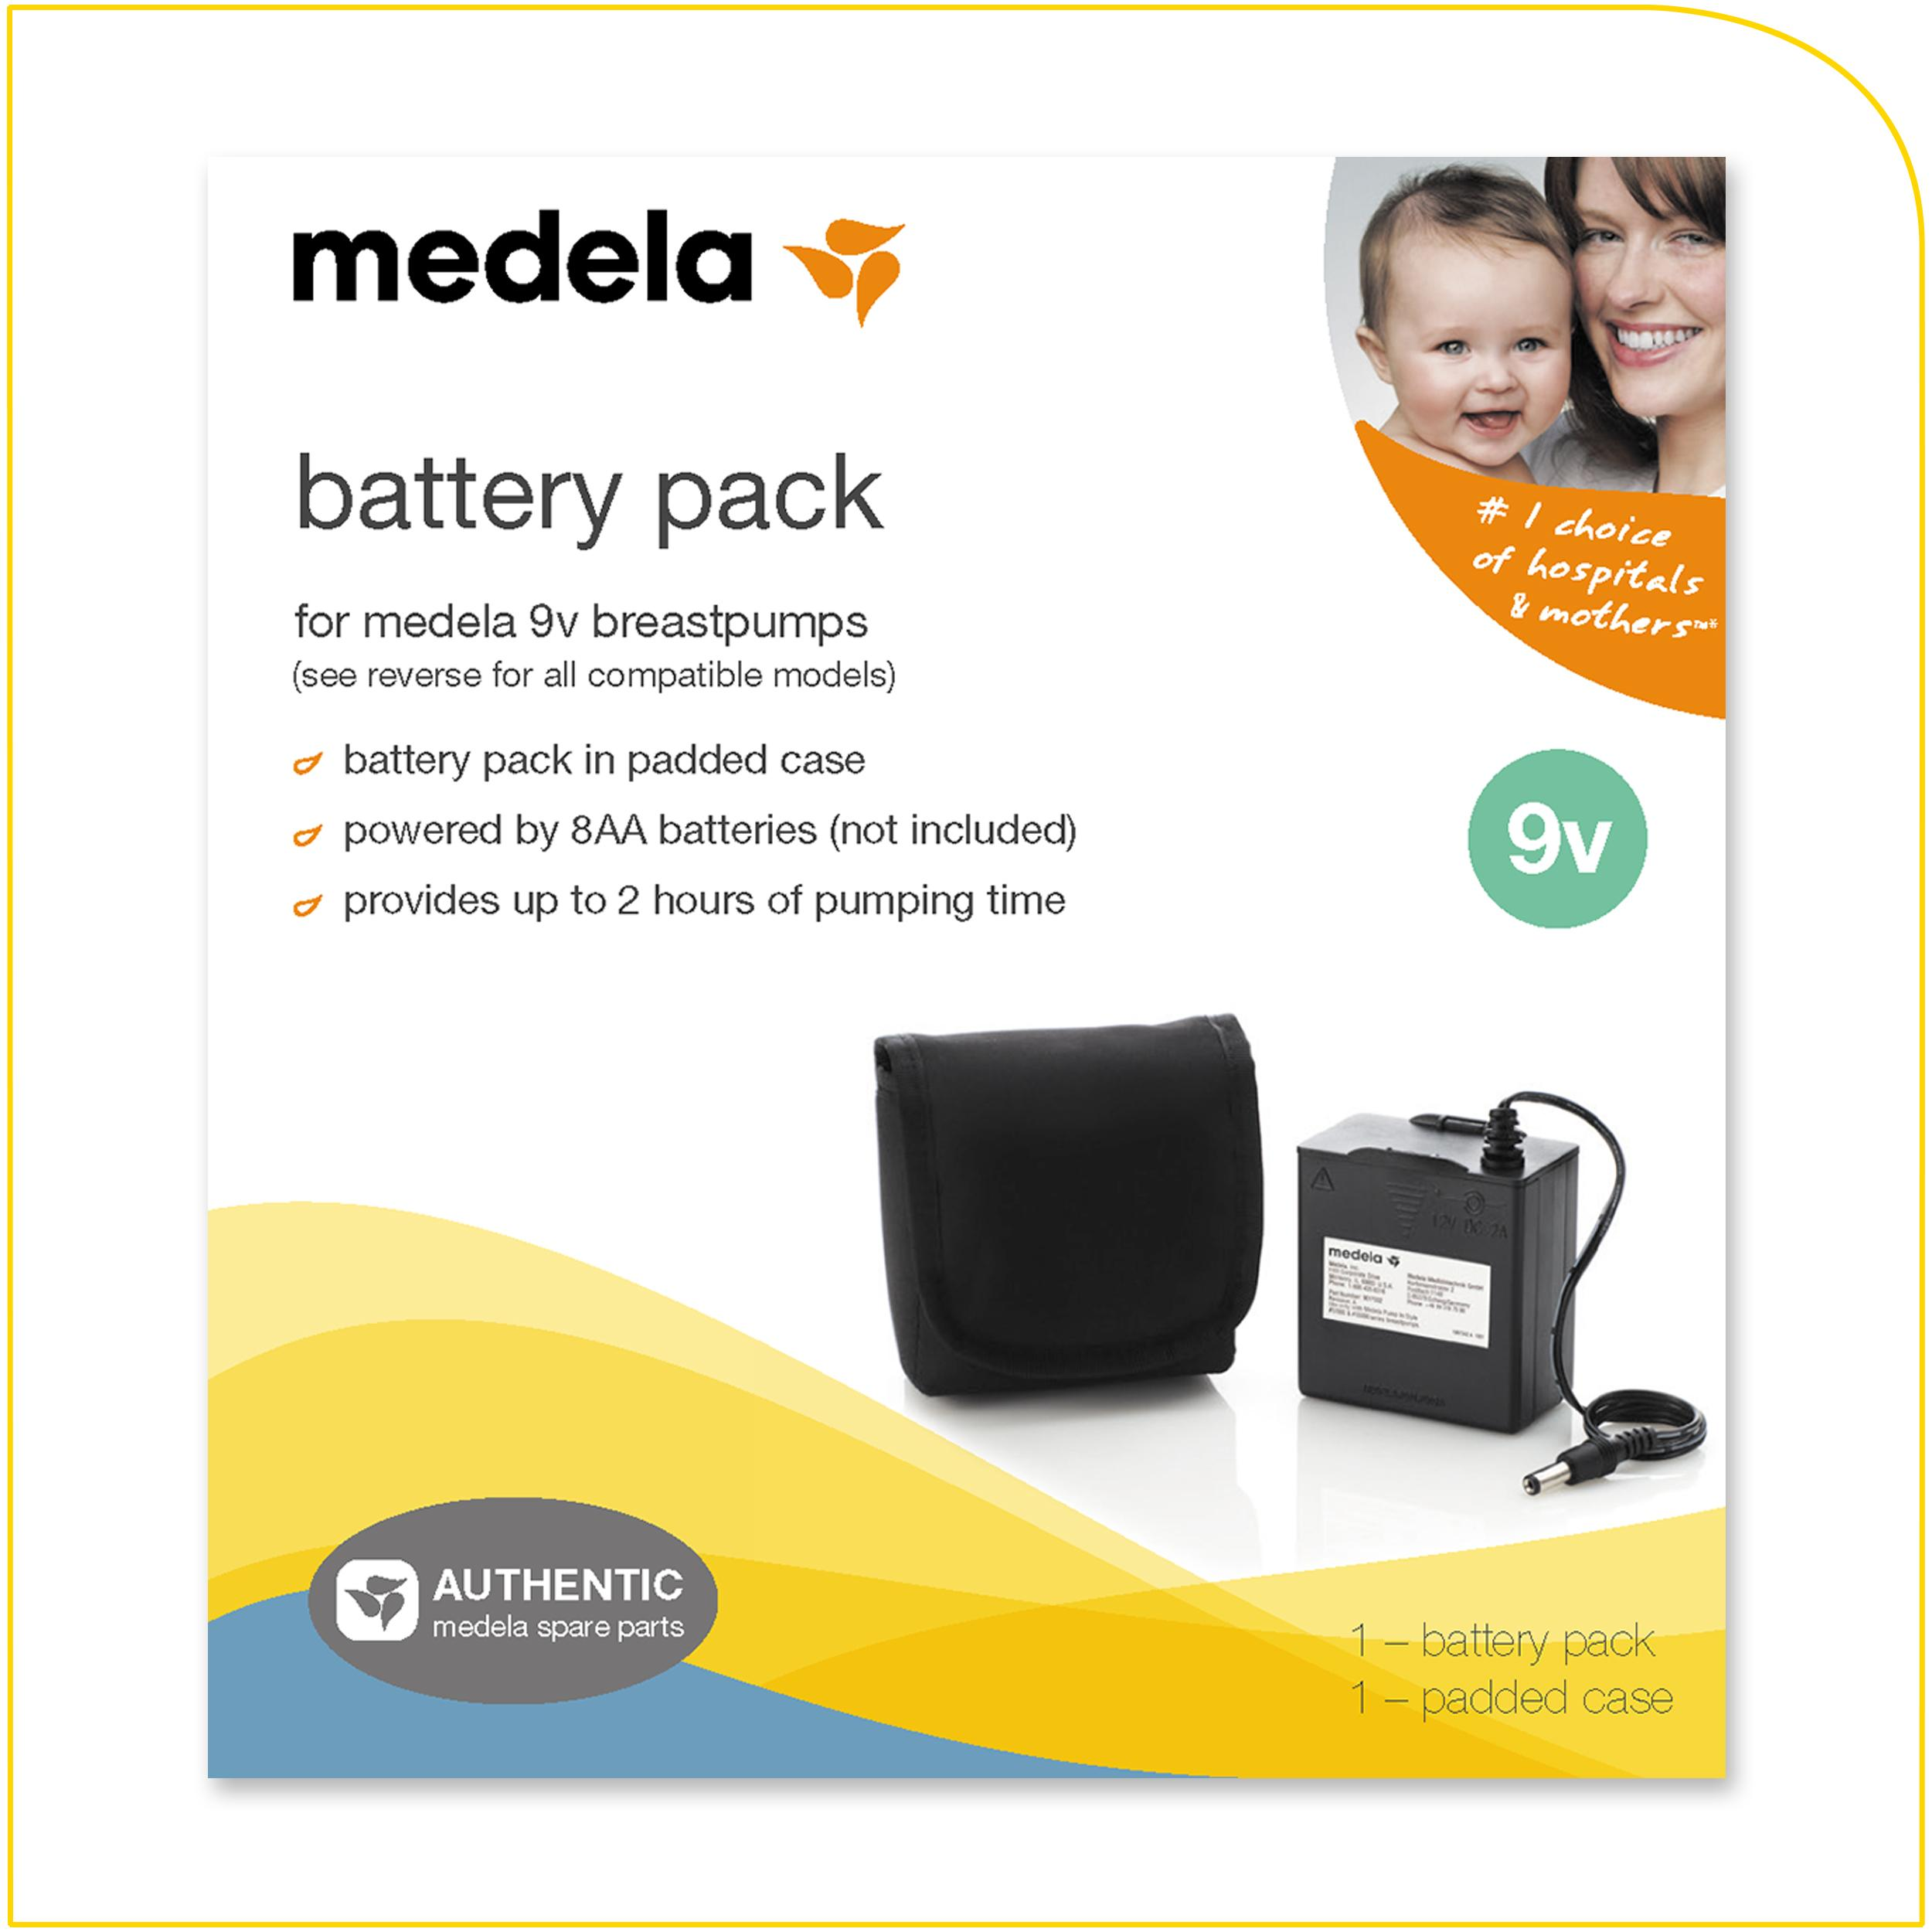 Amazoncom  Medela Pump In Style Battery Pack, Portable -7908